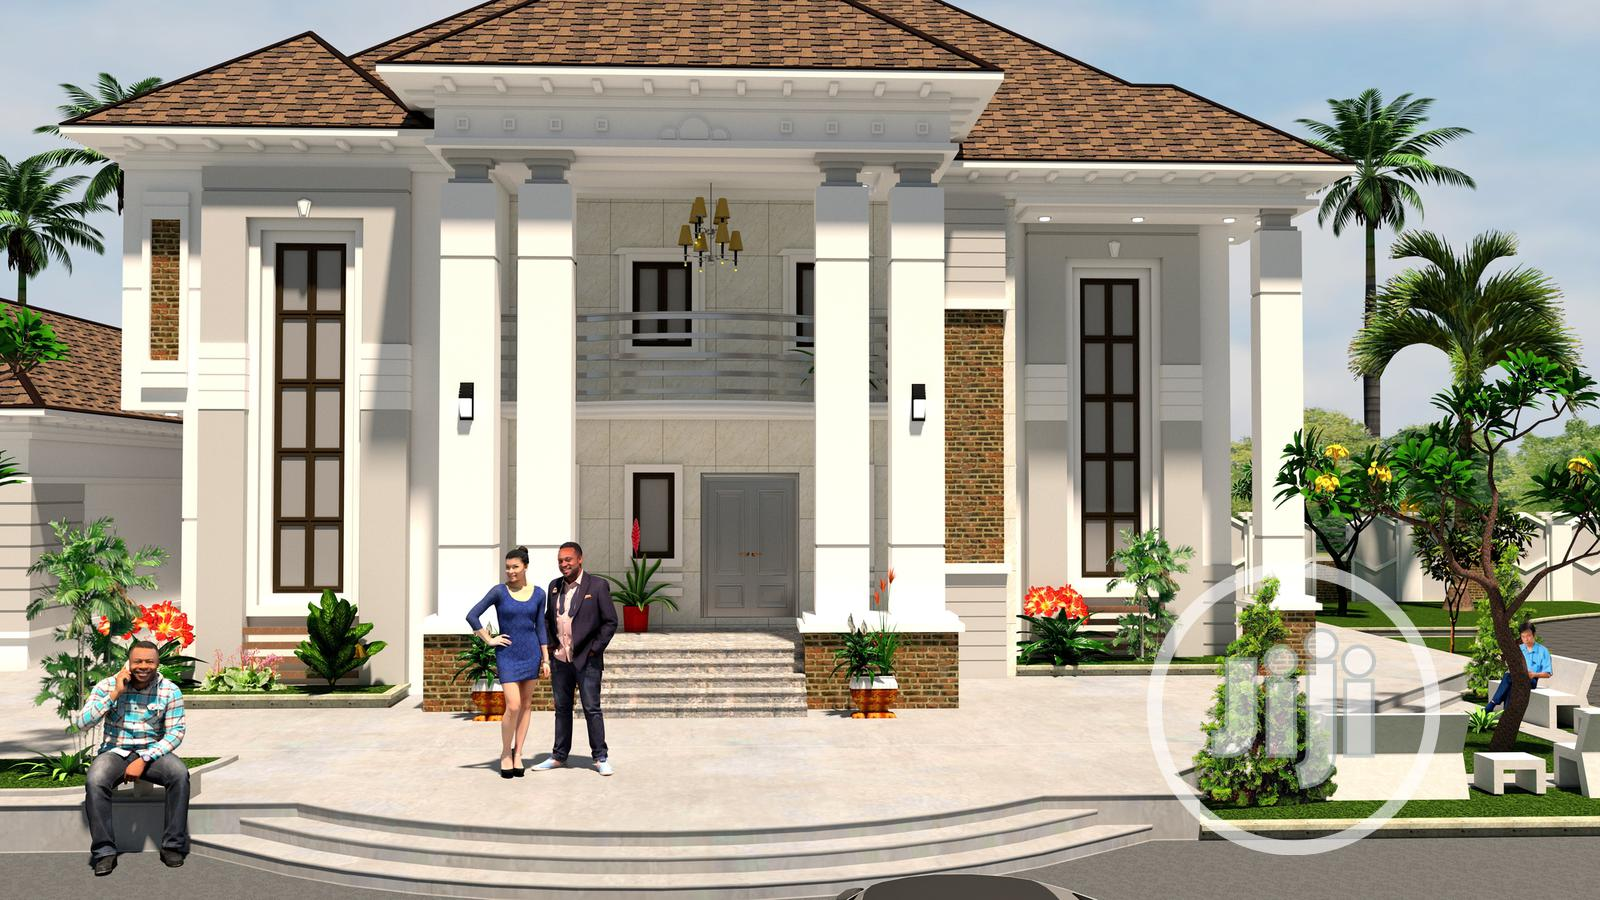 8 Bedroom Mansion Architectural Building Designs In Nigeria In Awka Building Trades Services Demanets Engineering Nig Ltd Jiji Ng